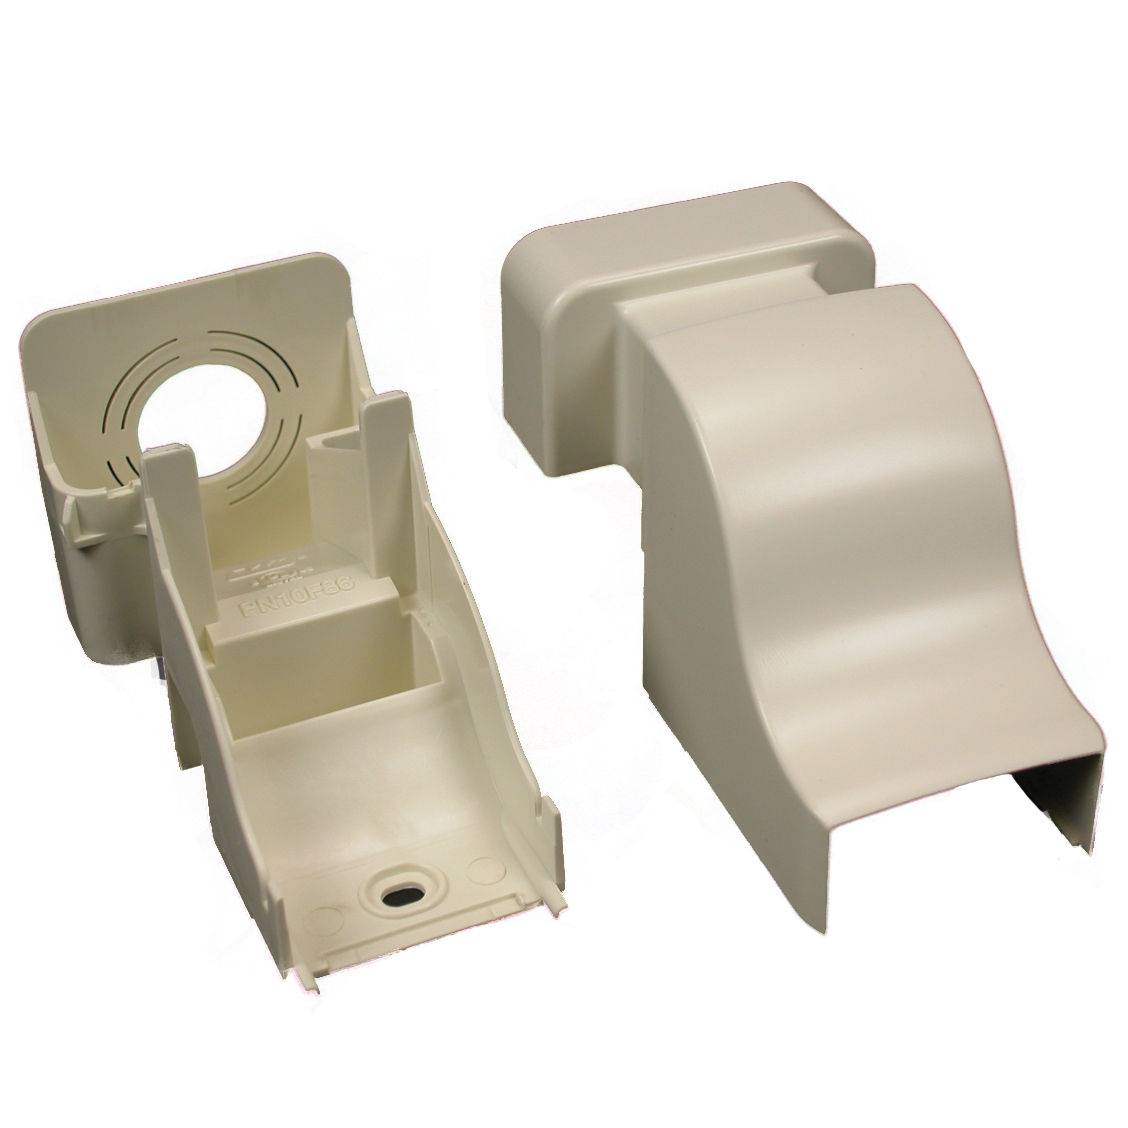 Legrand/Wiremold Nonmetallic Raceway - WiremoldProducts.com